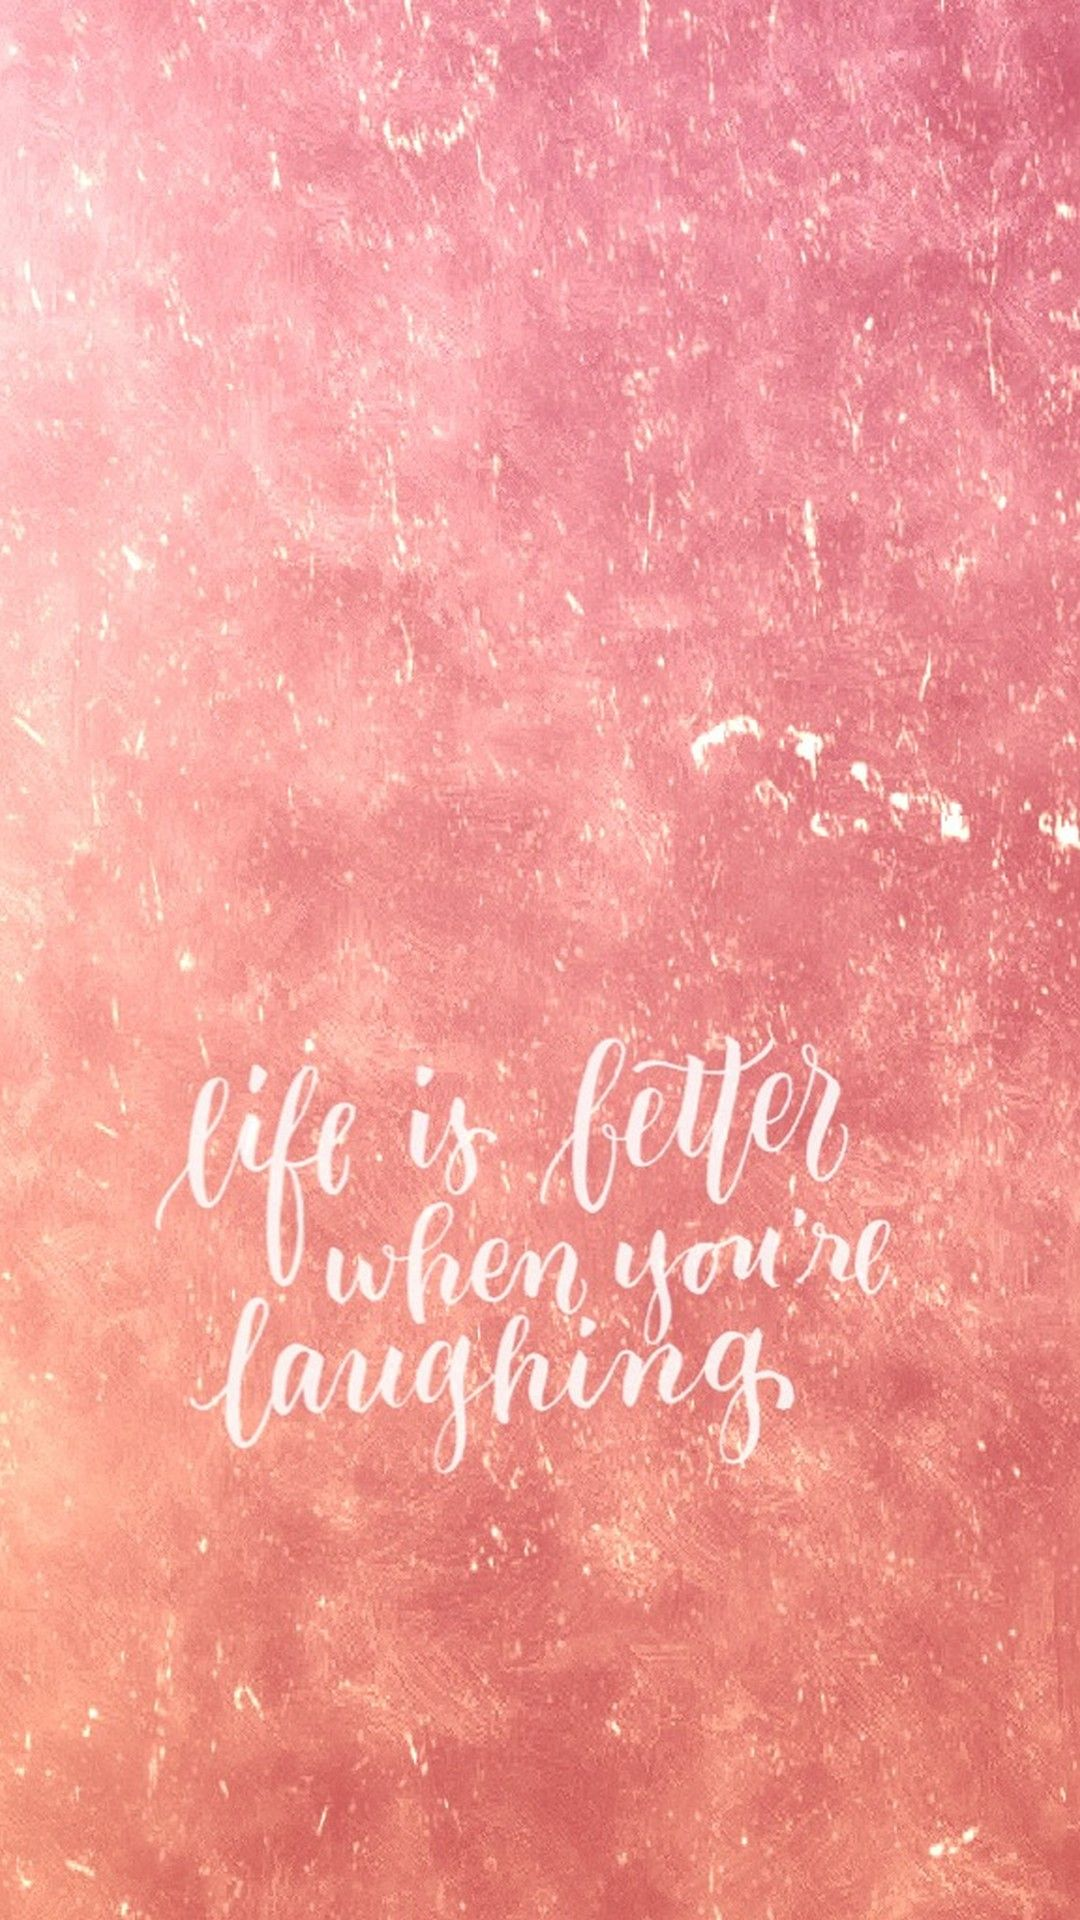 Awesome 8 Rose Gold Cute Wallpapers Hd For Your Android Or Iphone Wallpapers Android Iphone W Rose Gold Quote Wallpaper Rose Gold Quotes Rose Gold Wallpaper